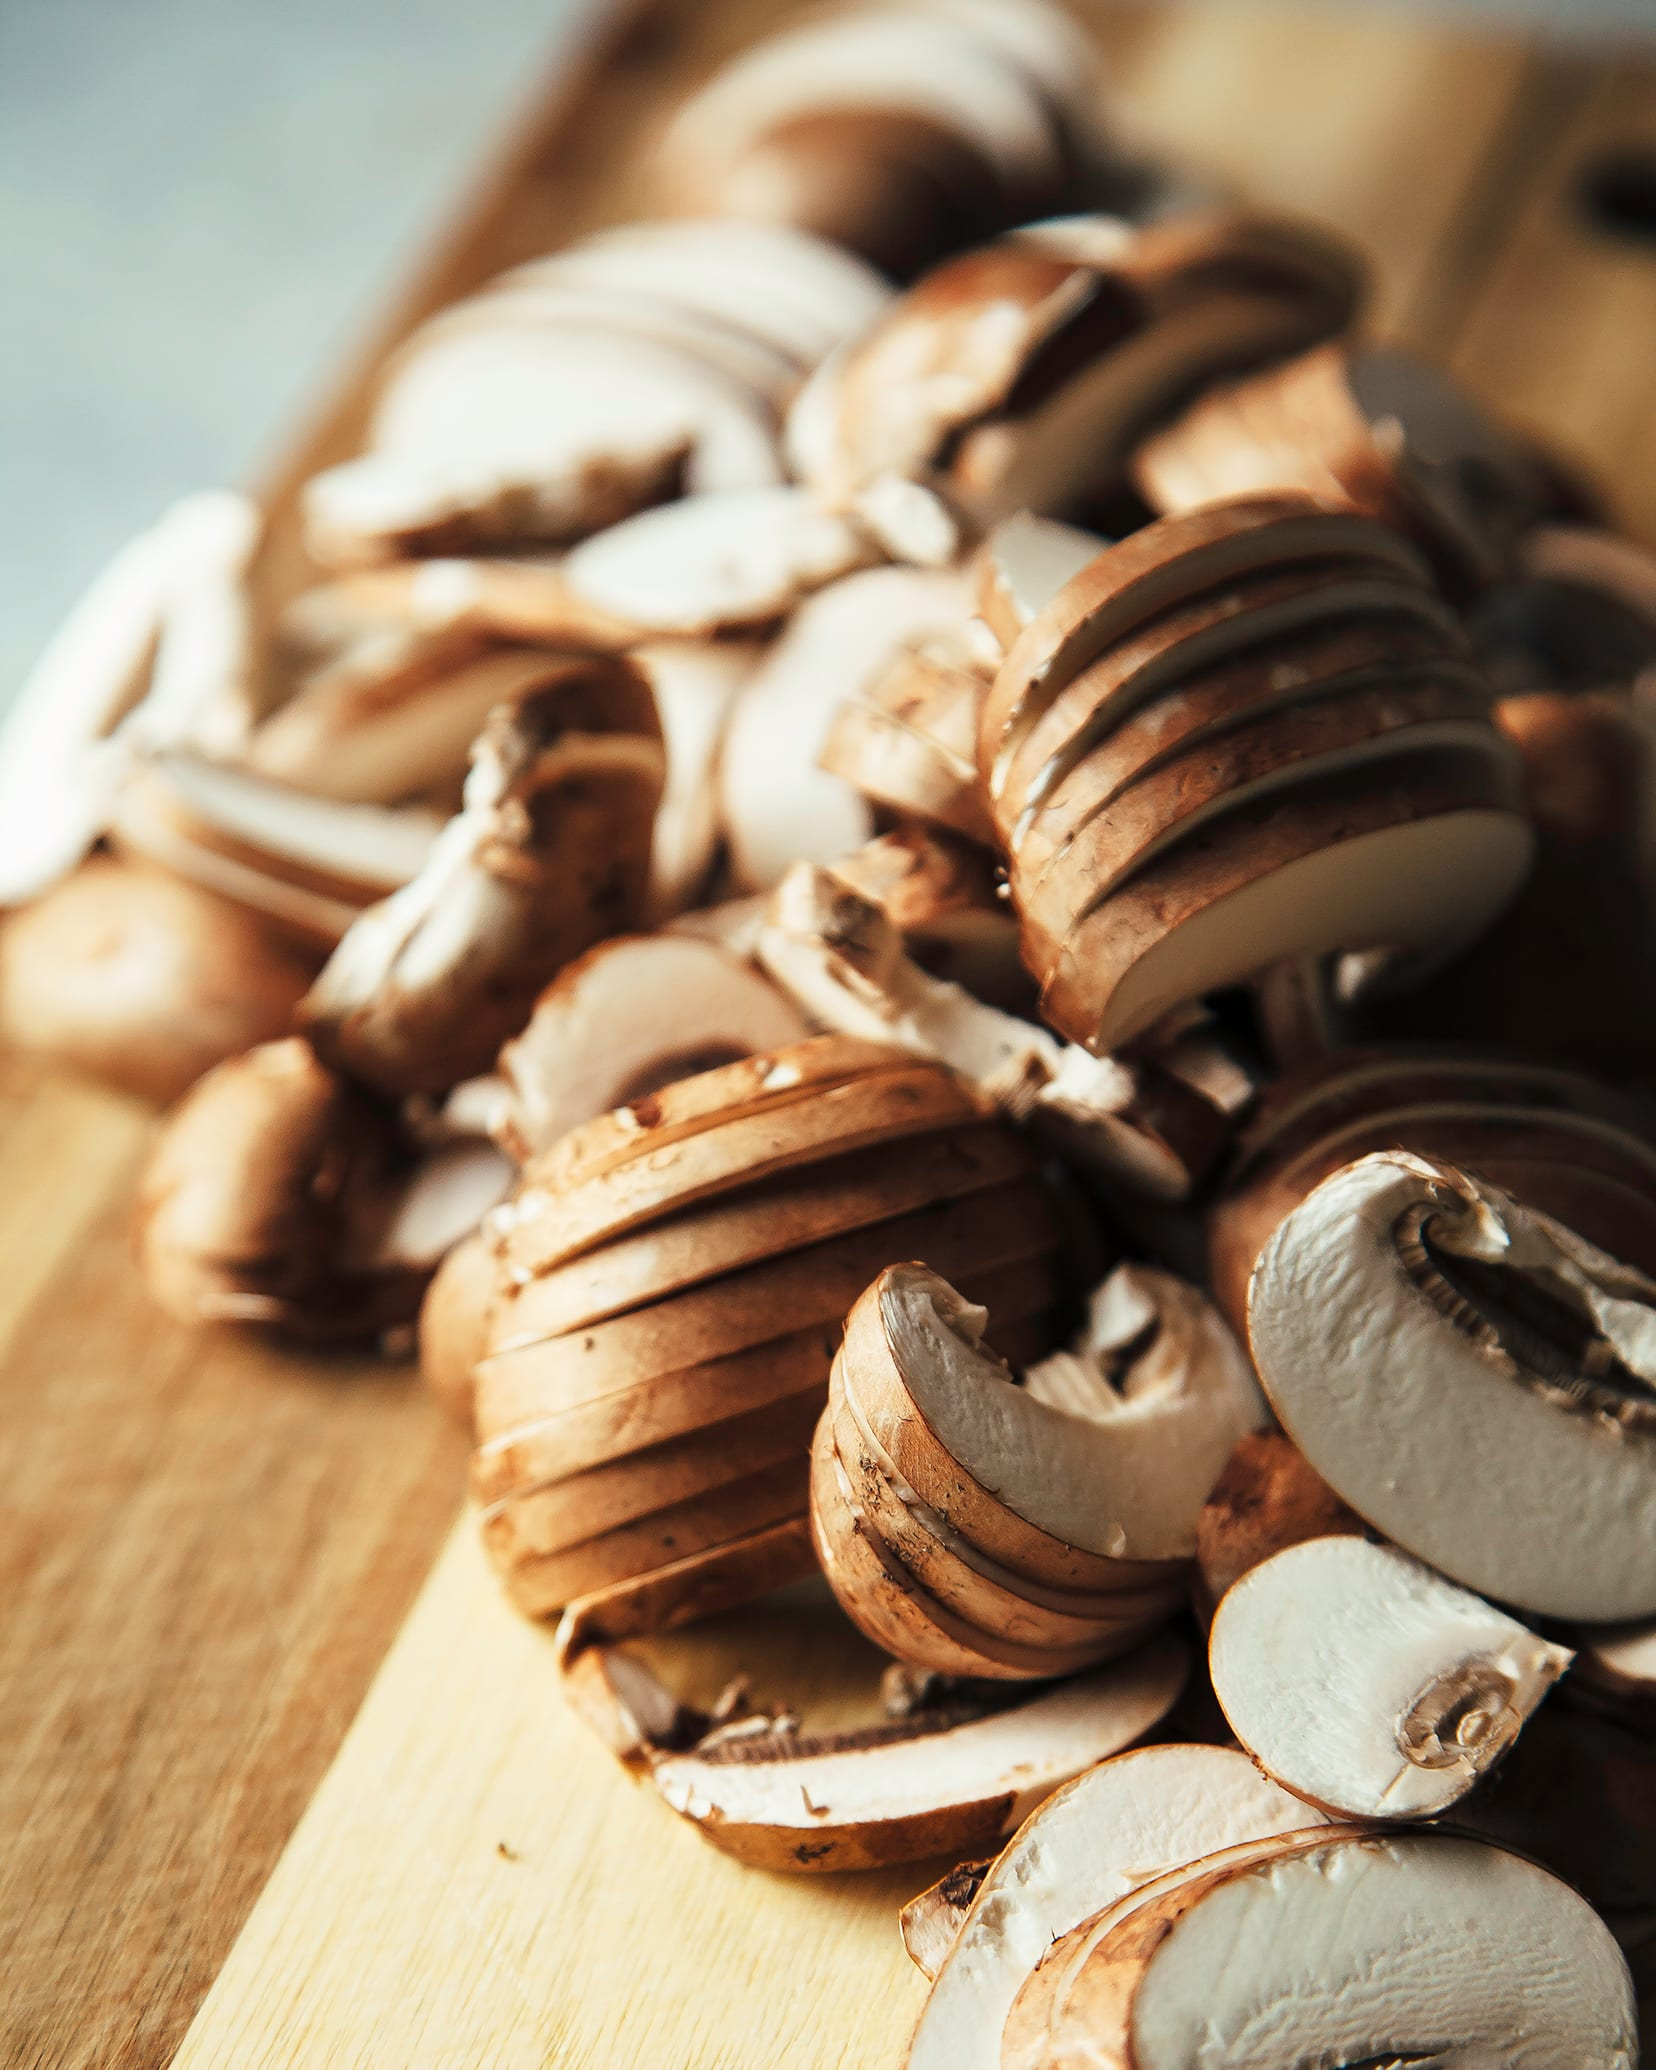 A 3/4 angle shot of some sliced mushrooms.